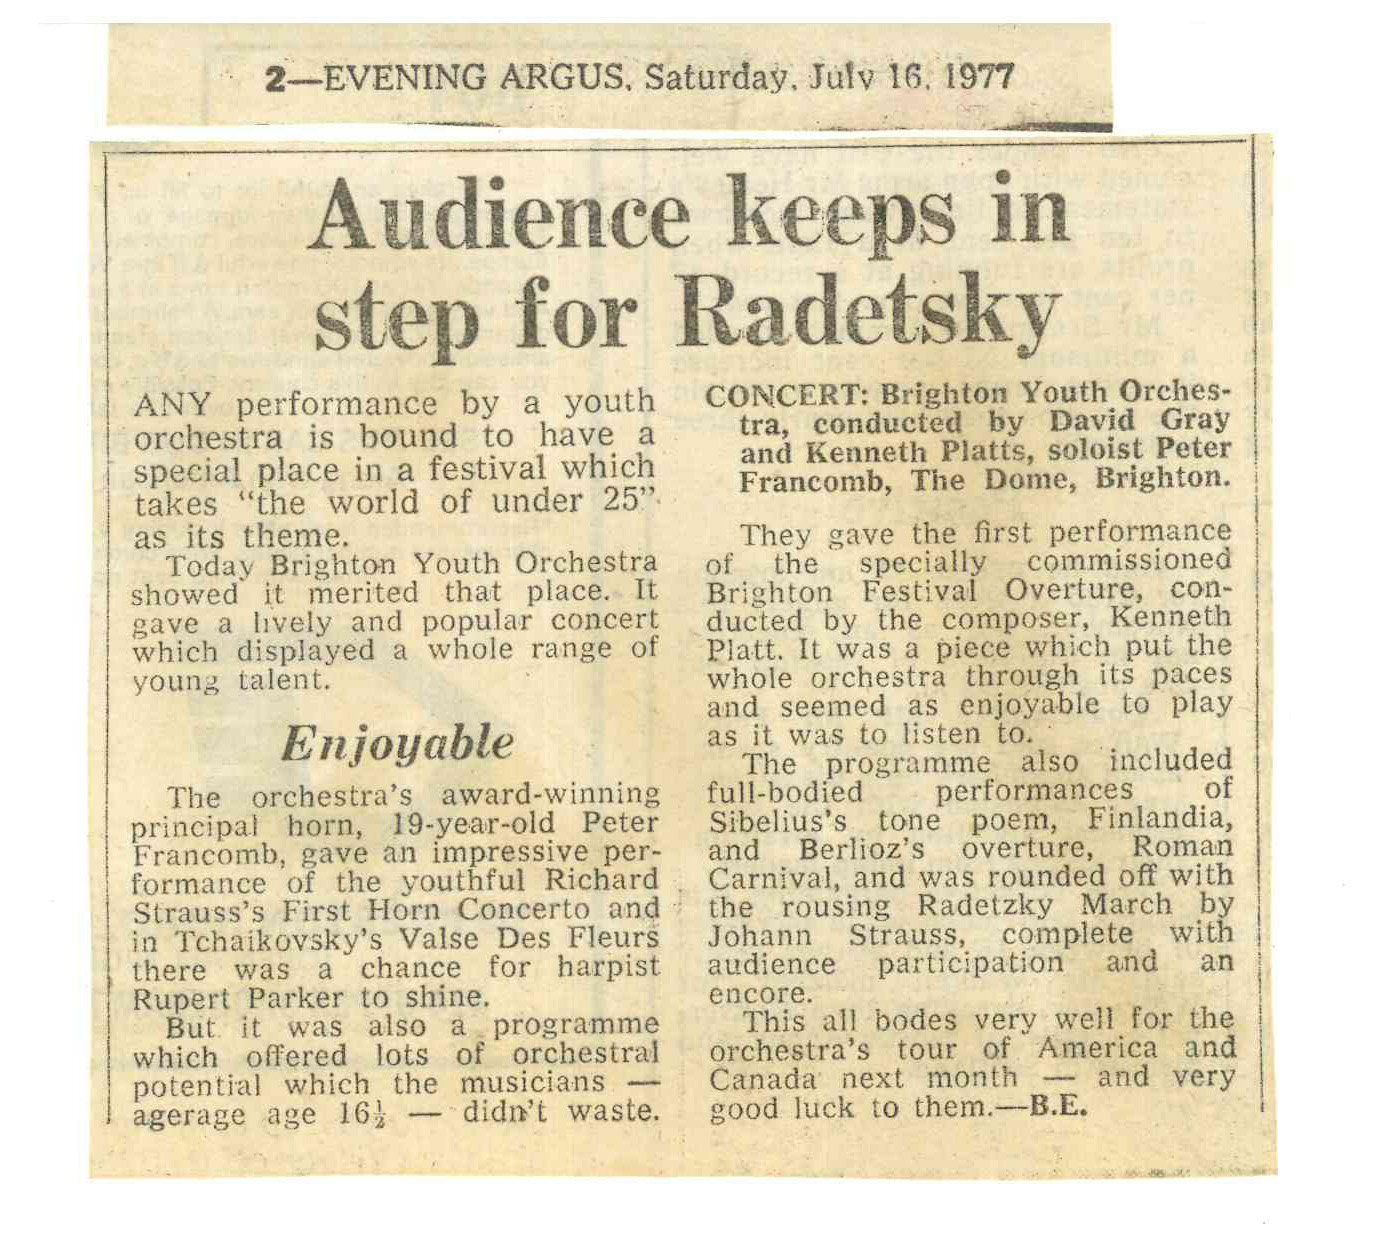 00037-Evening Argus, 16th July 1977.jpg